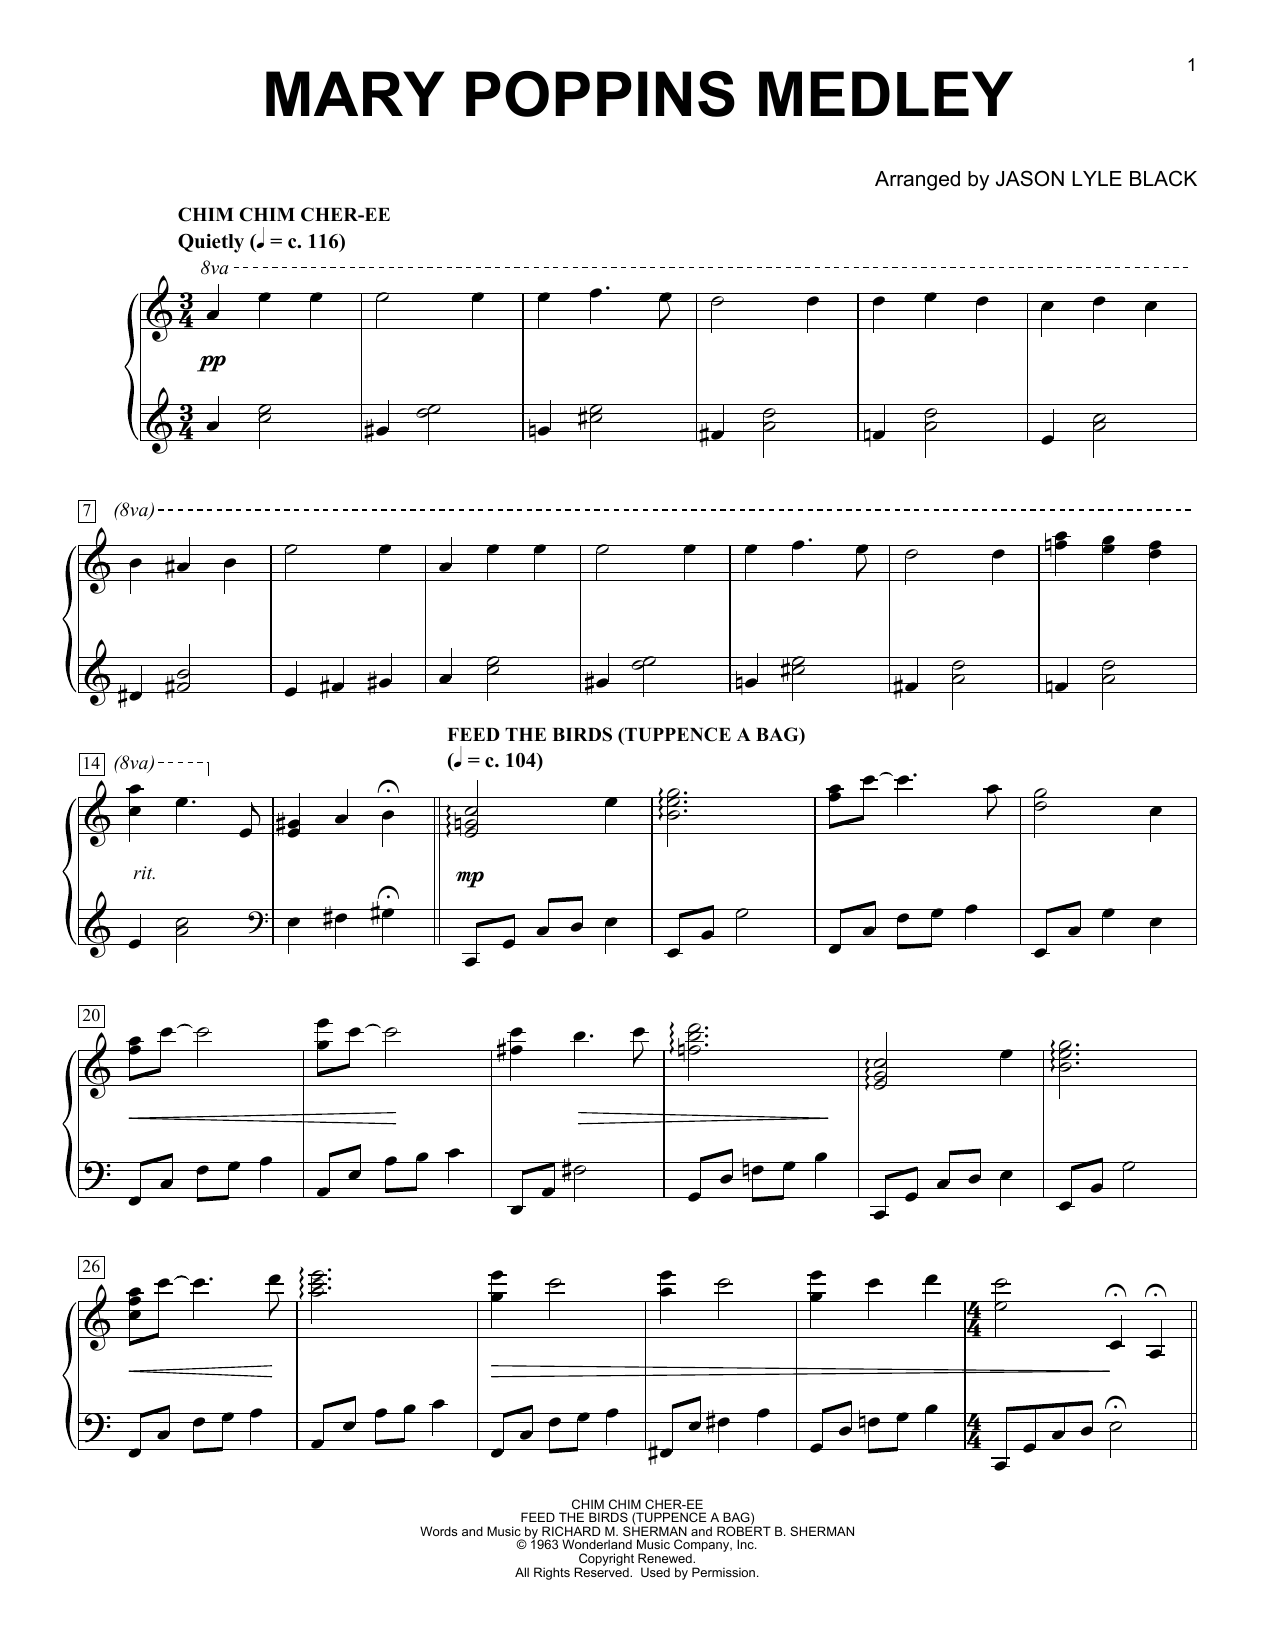 Sherman Brothers Mary Poppins Medley (arr. Jason Lyle Black) sheet music notes and chords